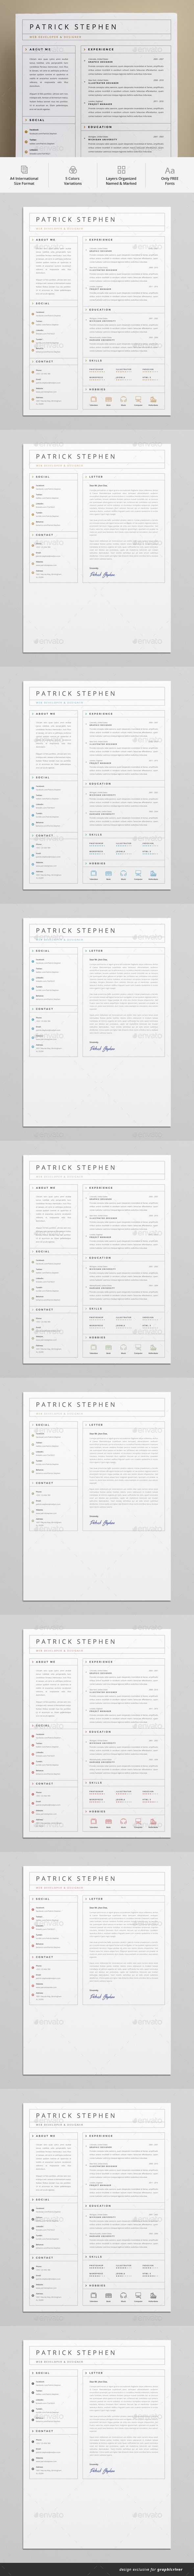 best ideas about resume layout resume design resume